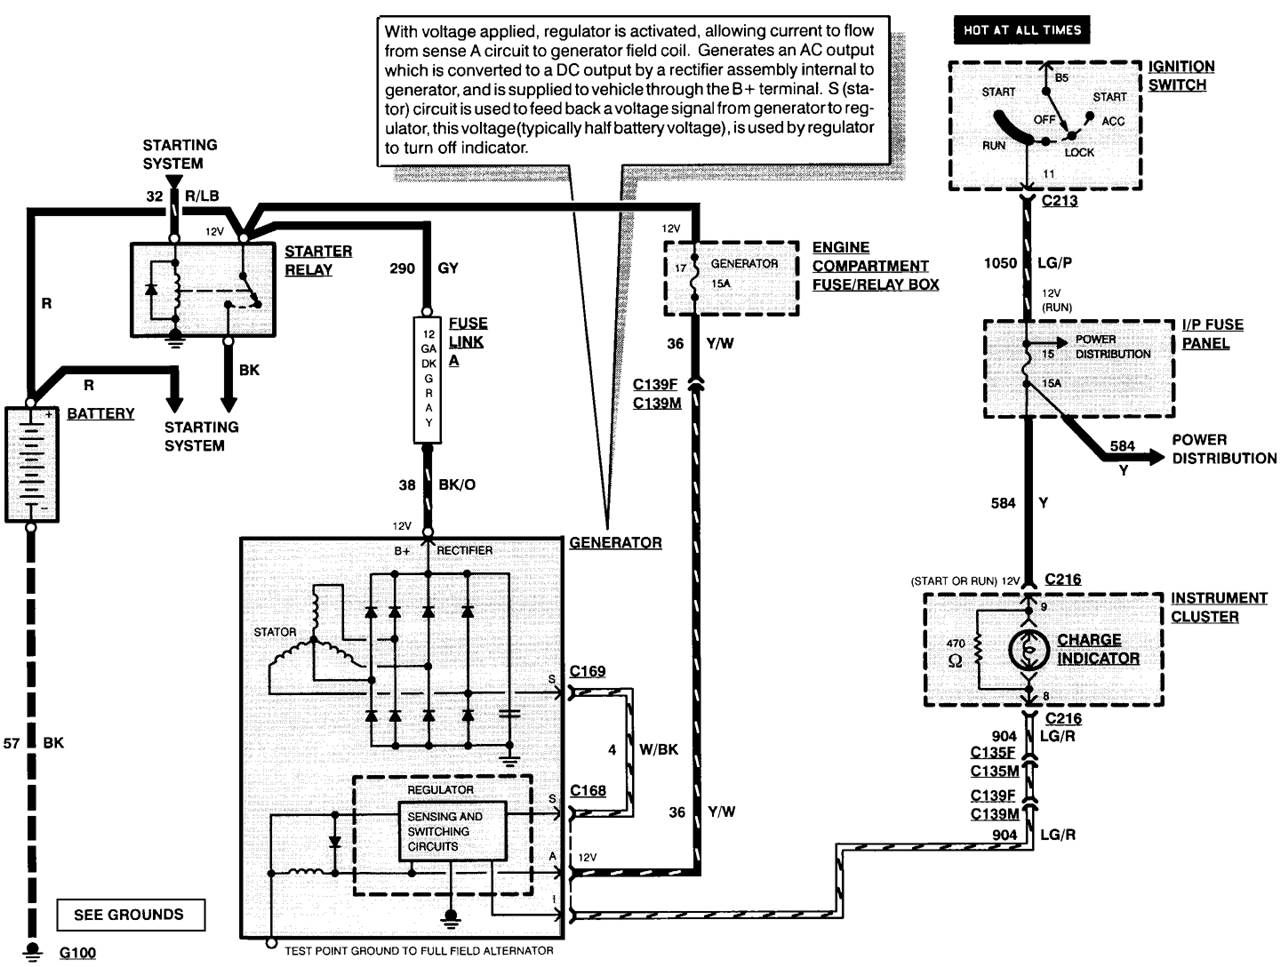 Ford alternator wiring diagram internal regulator 1994 f700 wiring diagram on 1994 download wirning diagrams Ford F-150 Wire Schematics at gsmportal.co